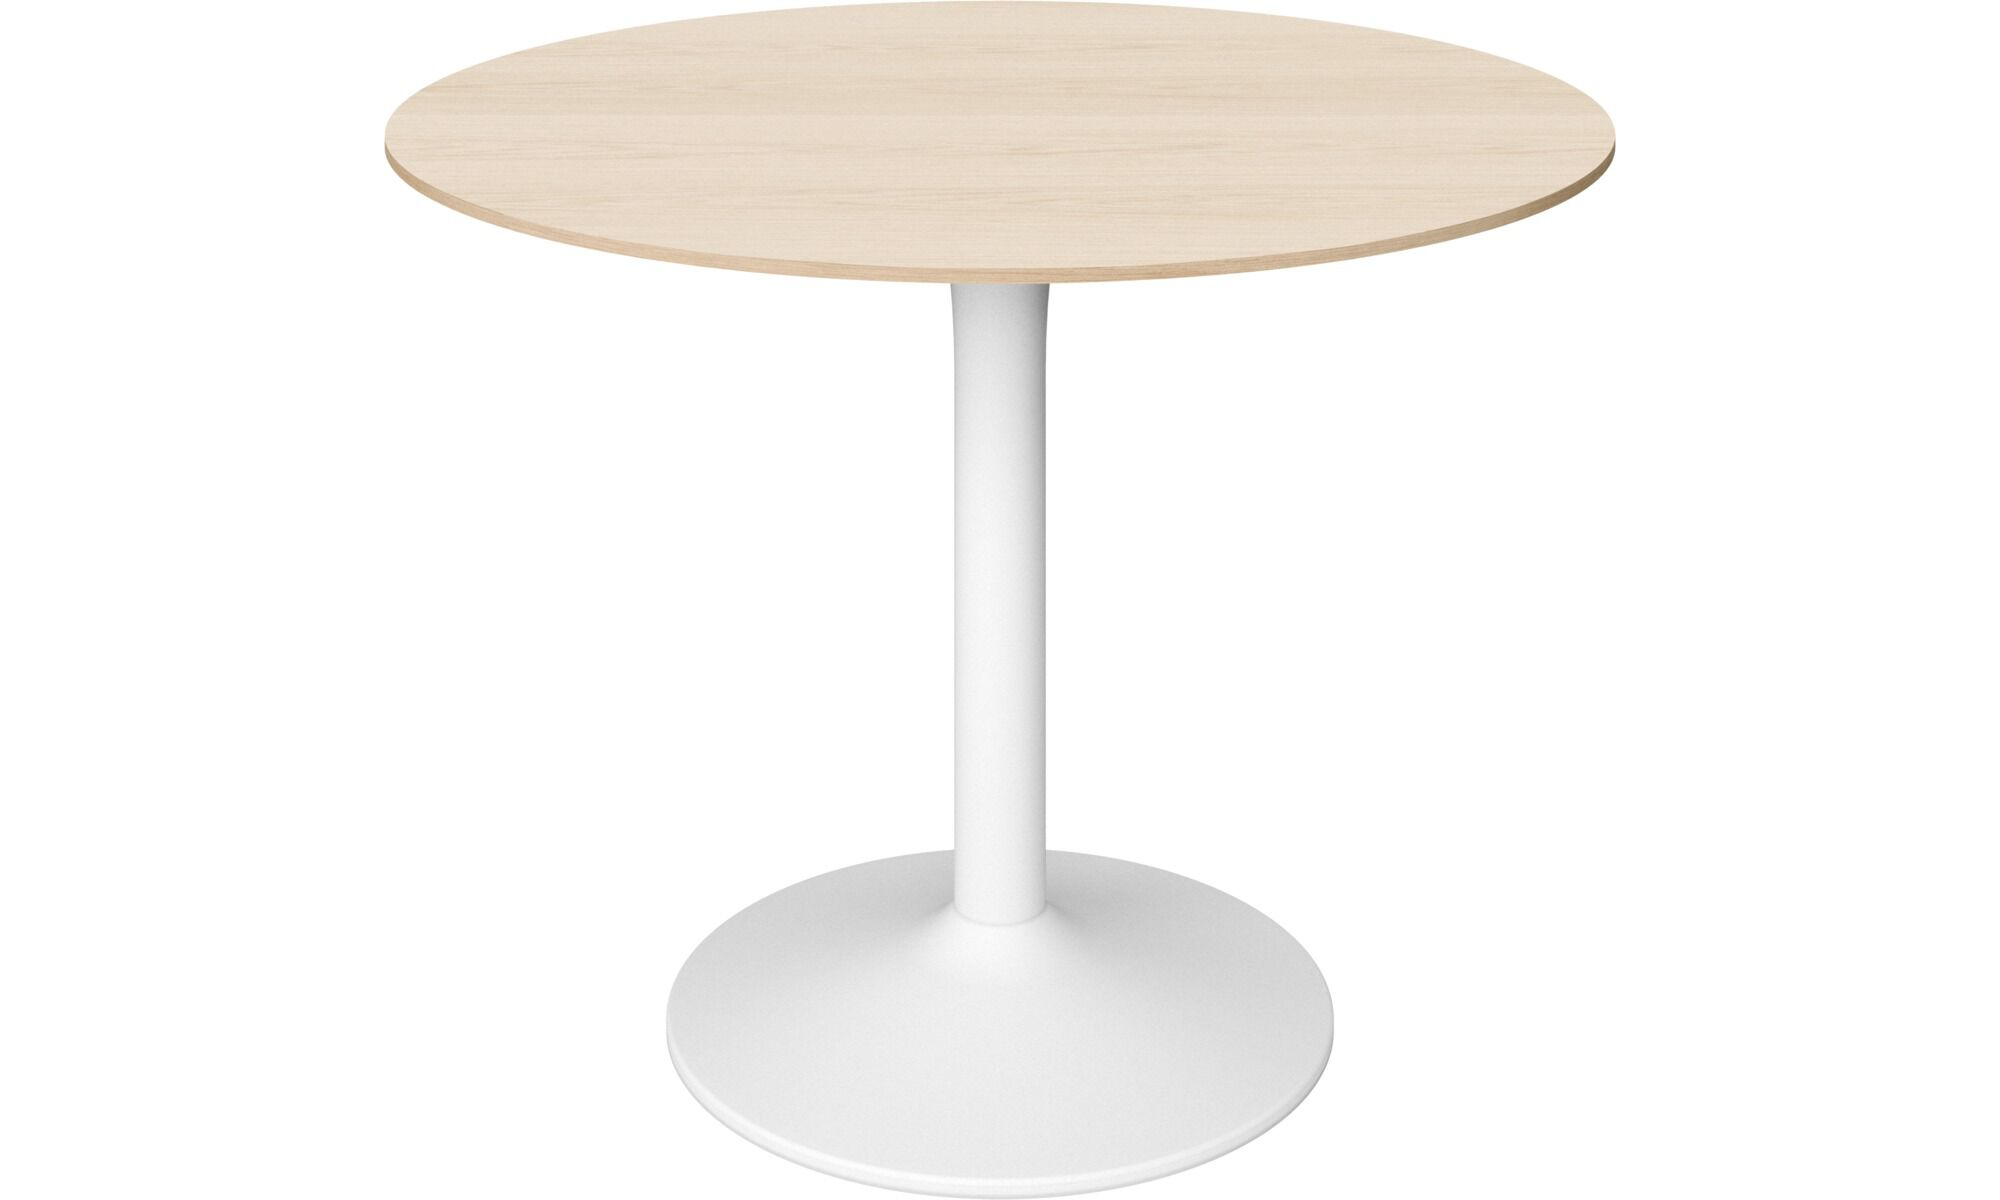 Oak Trendy White Desk Concepts Dining tables - New York table - round - Brown - Oak